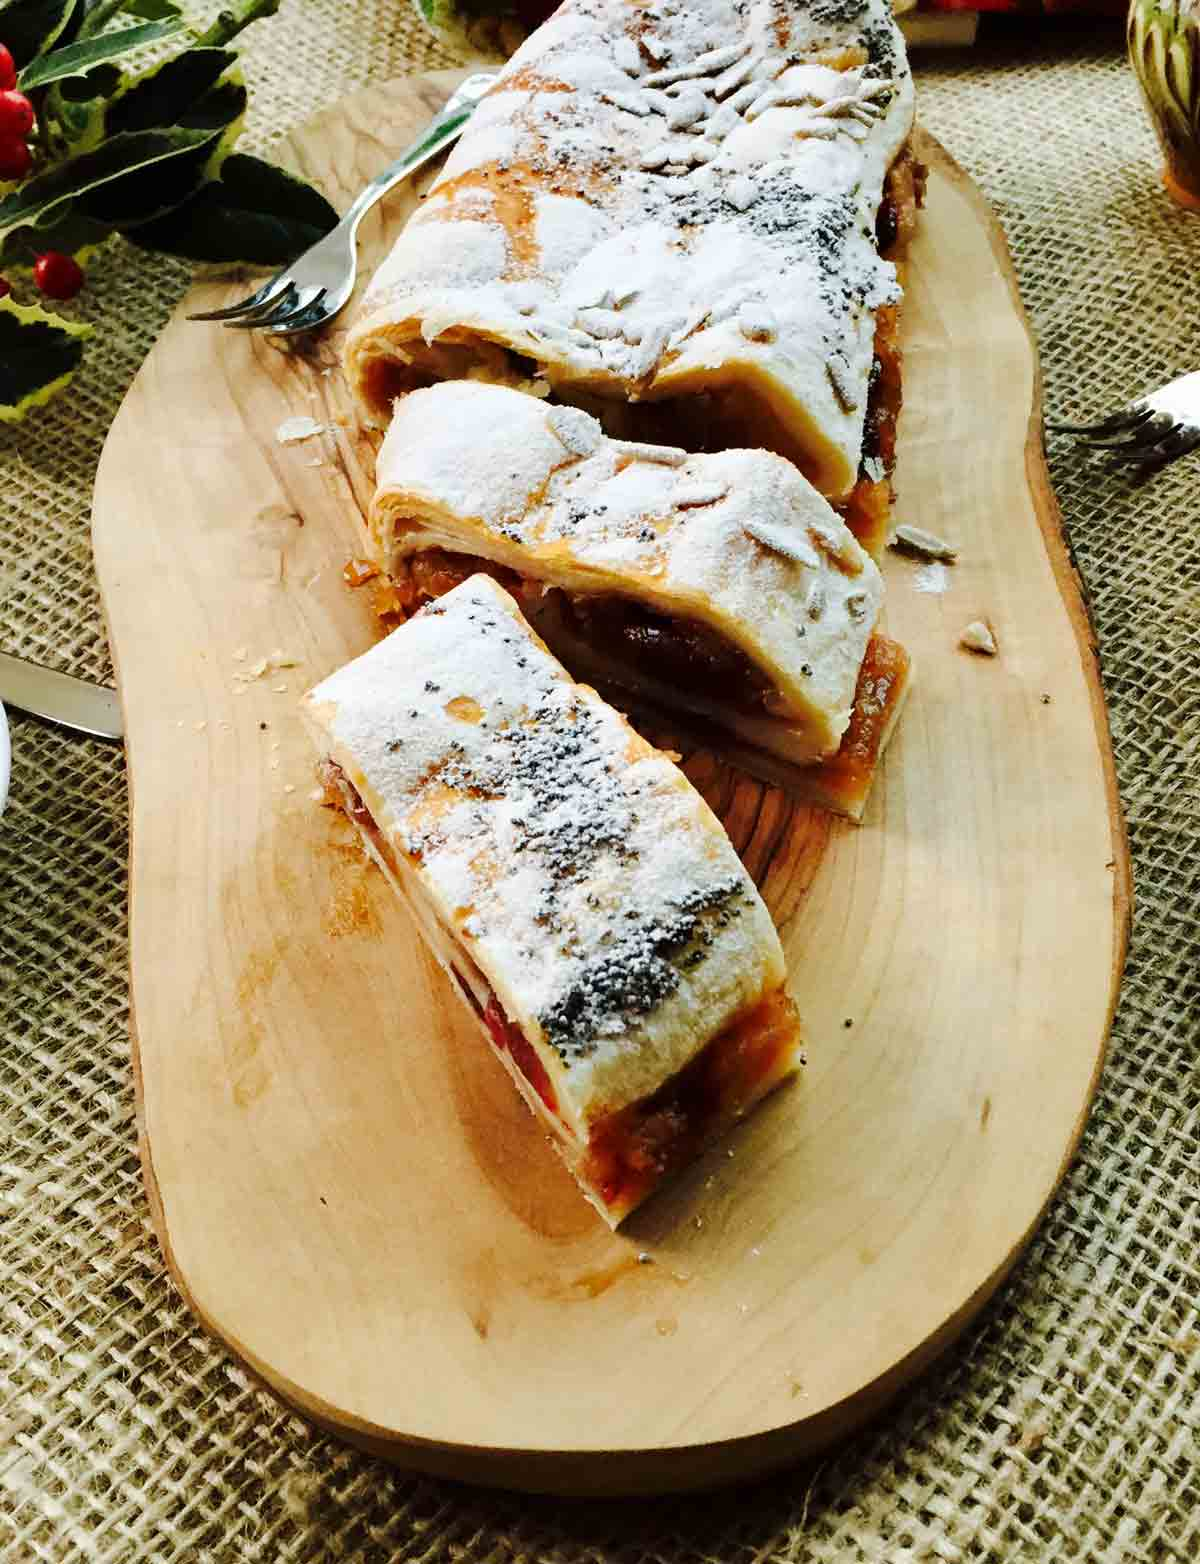 Some slices of delicious apple strudel (roulade).